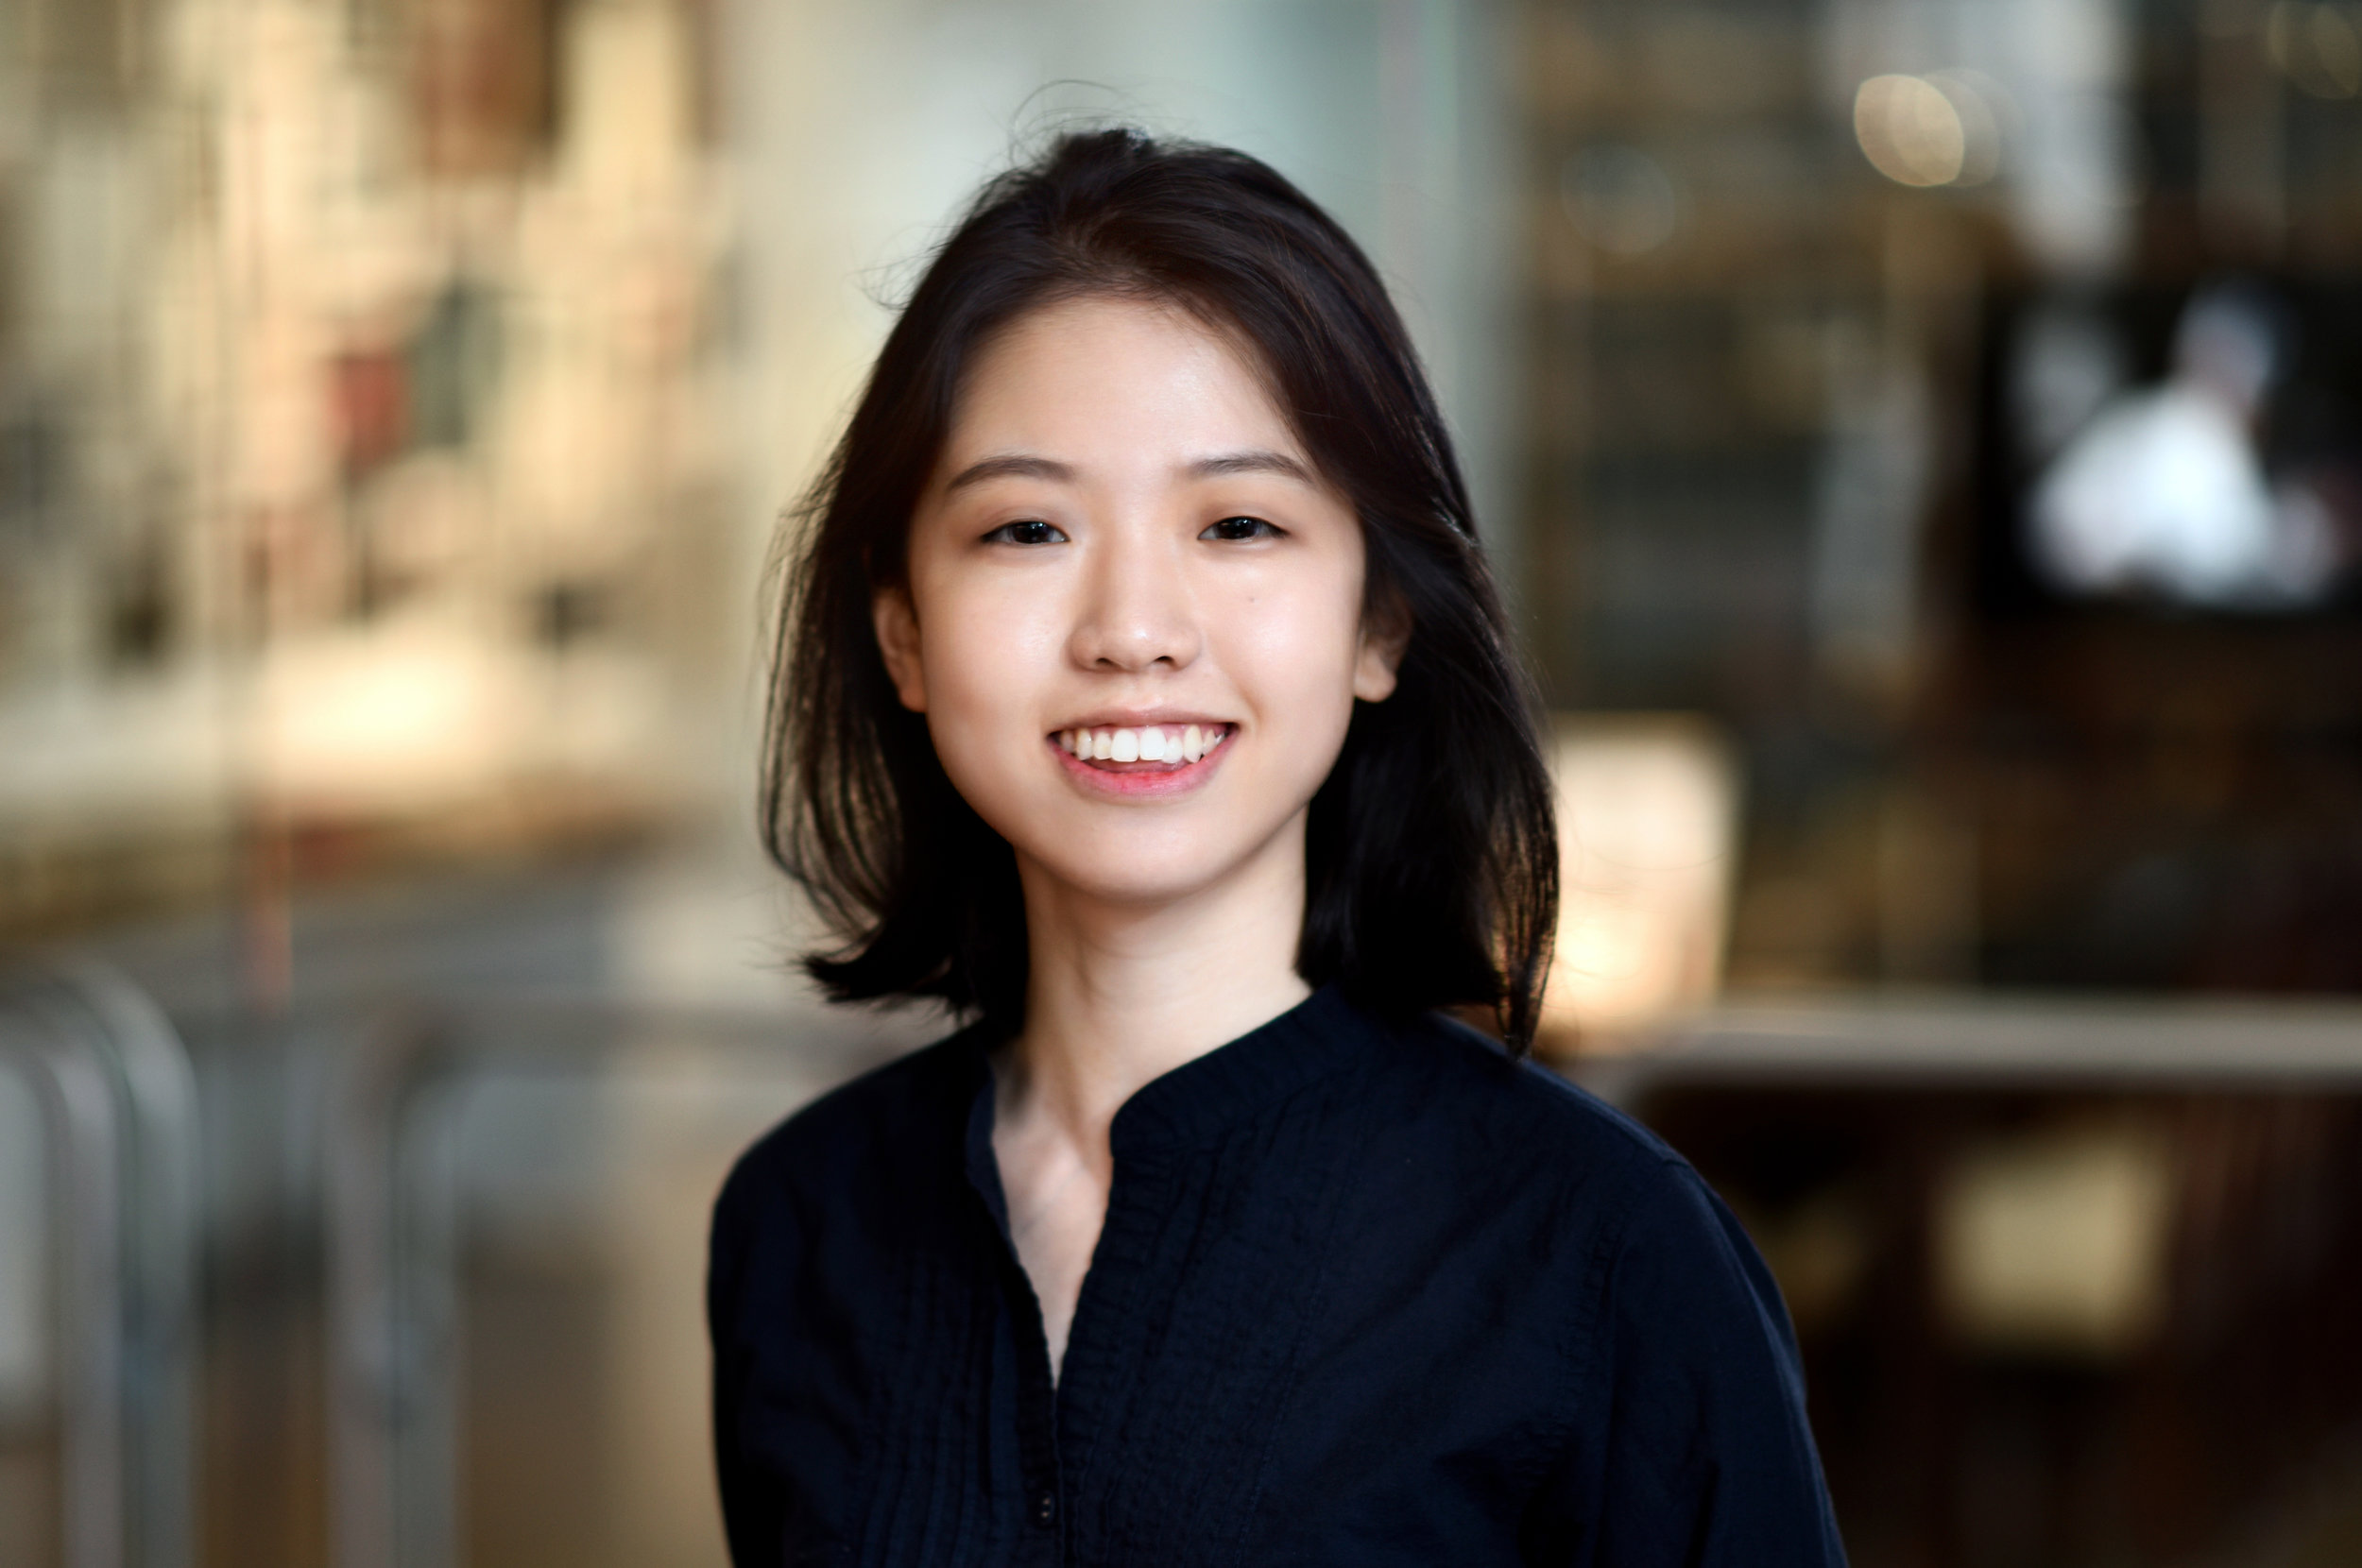 Danye Jiang is a graduate student in the Department of Neuroscience at Baylor College of Medicine. Prior to starting graduate study at Baylor, Danye earned her Bachelor of Science in Molecular and Cellular Biology at the Johns Hopkins University. During her undergraduate degree training, she conducted research investigating isoflurane and its effects on neuronal structure and development  in vivo  via the mTOR pathway under the supervision of Dr. David Mintz and Dr. Guo-li Ming. She is currently working on discovering novel cell-specific genetic markers for the identification of murine retinal cells.   When Danye is not in the laboratory she can be found rock climbing or hiking. In addition she enjoys antiquing and attending classical music concerts.